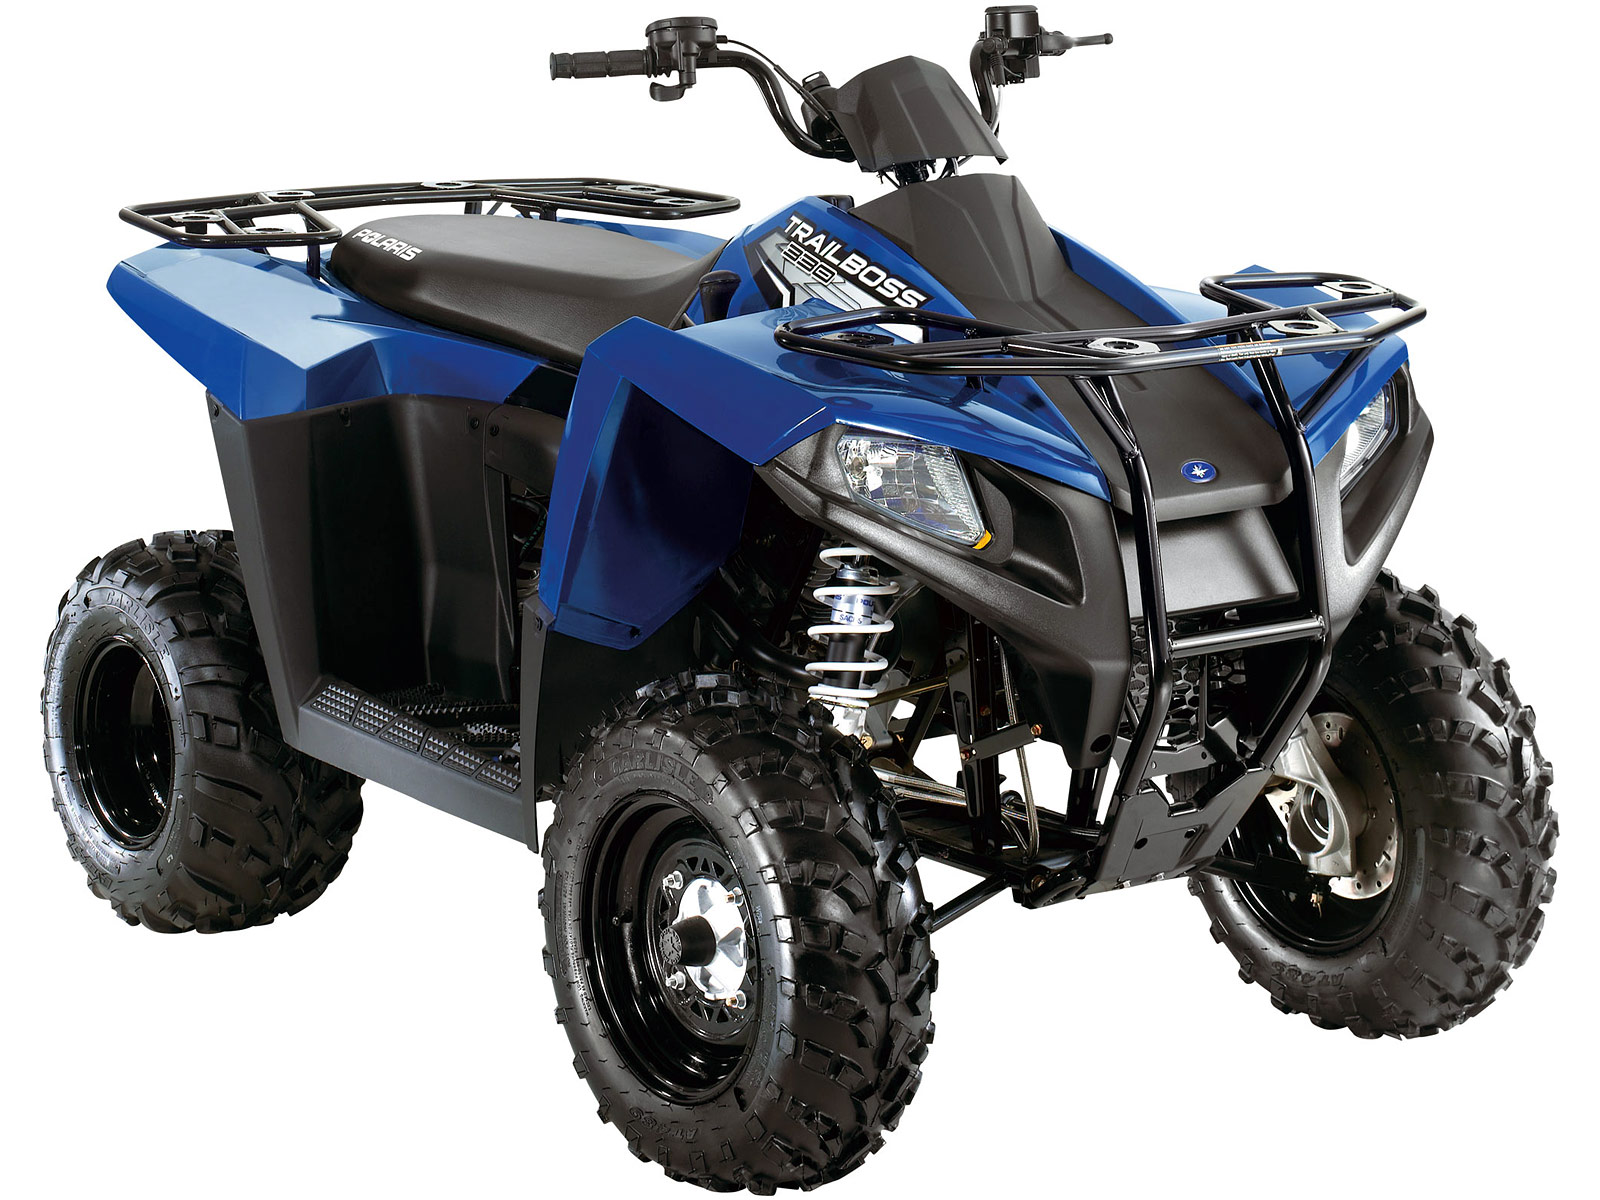 http://1.bp.blogspot.com/-pPFYlqMe1Tg/Tu_in_Ba36I/AAAAAAAAK7M/vqS6xSpVlAo/s1600/2012-Polaris-Trail-Boss-330-ATV-wallpapers-2.jpg